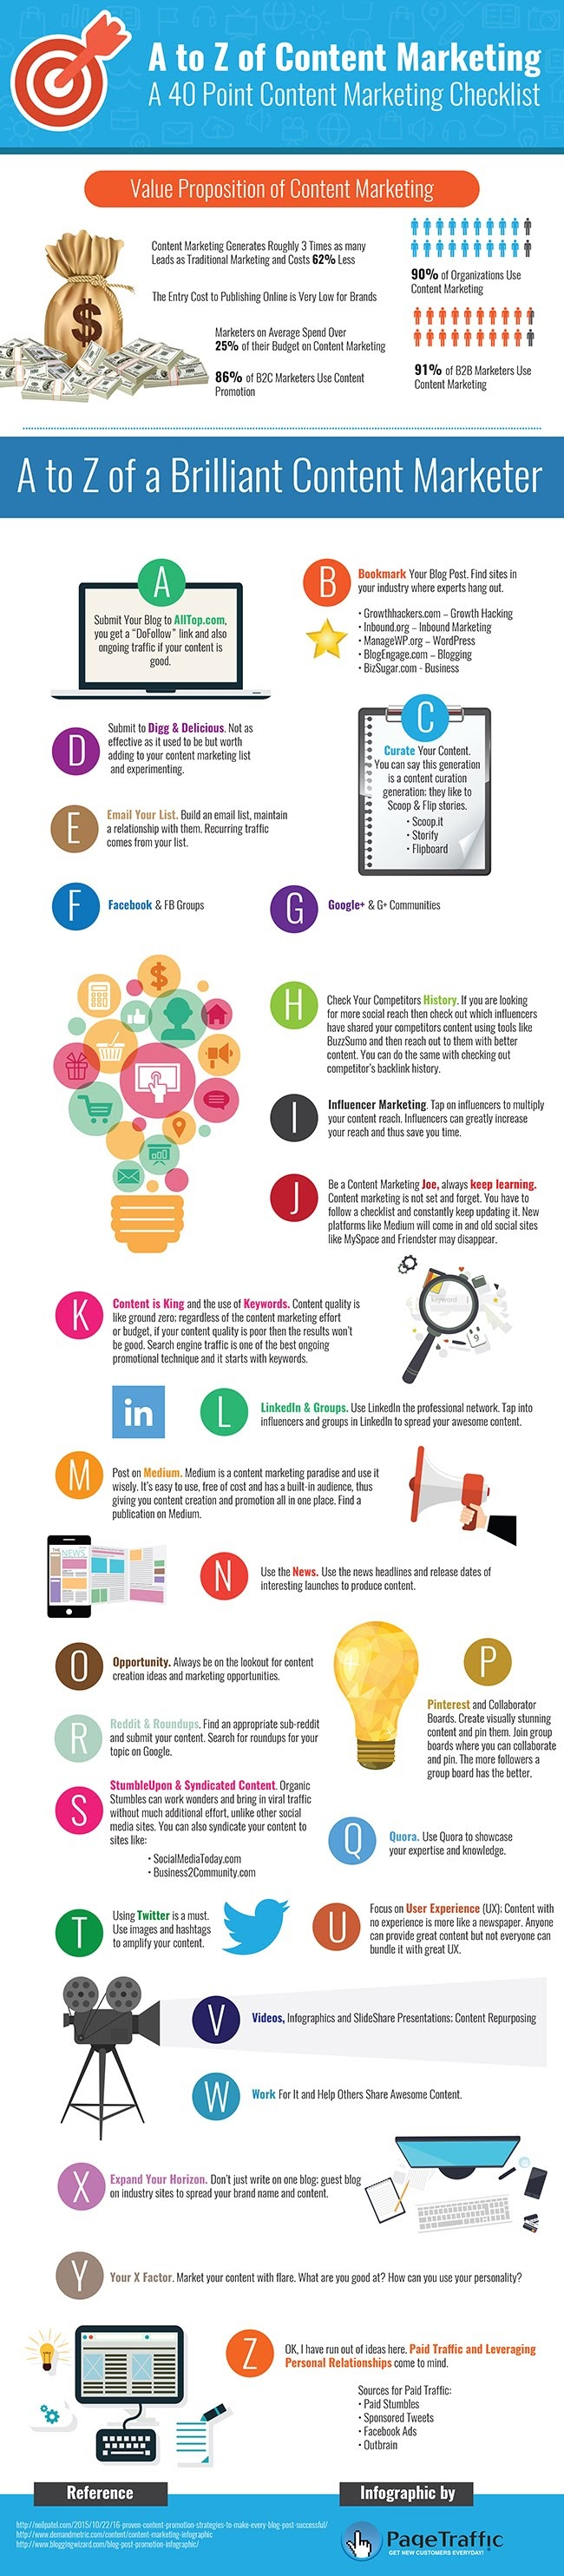 A to Z of Content Marketing: A 40 Point Content Marketing Checklist! - #infographic